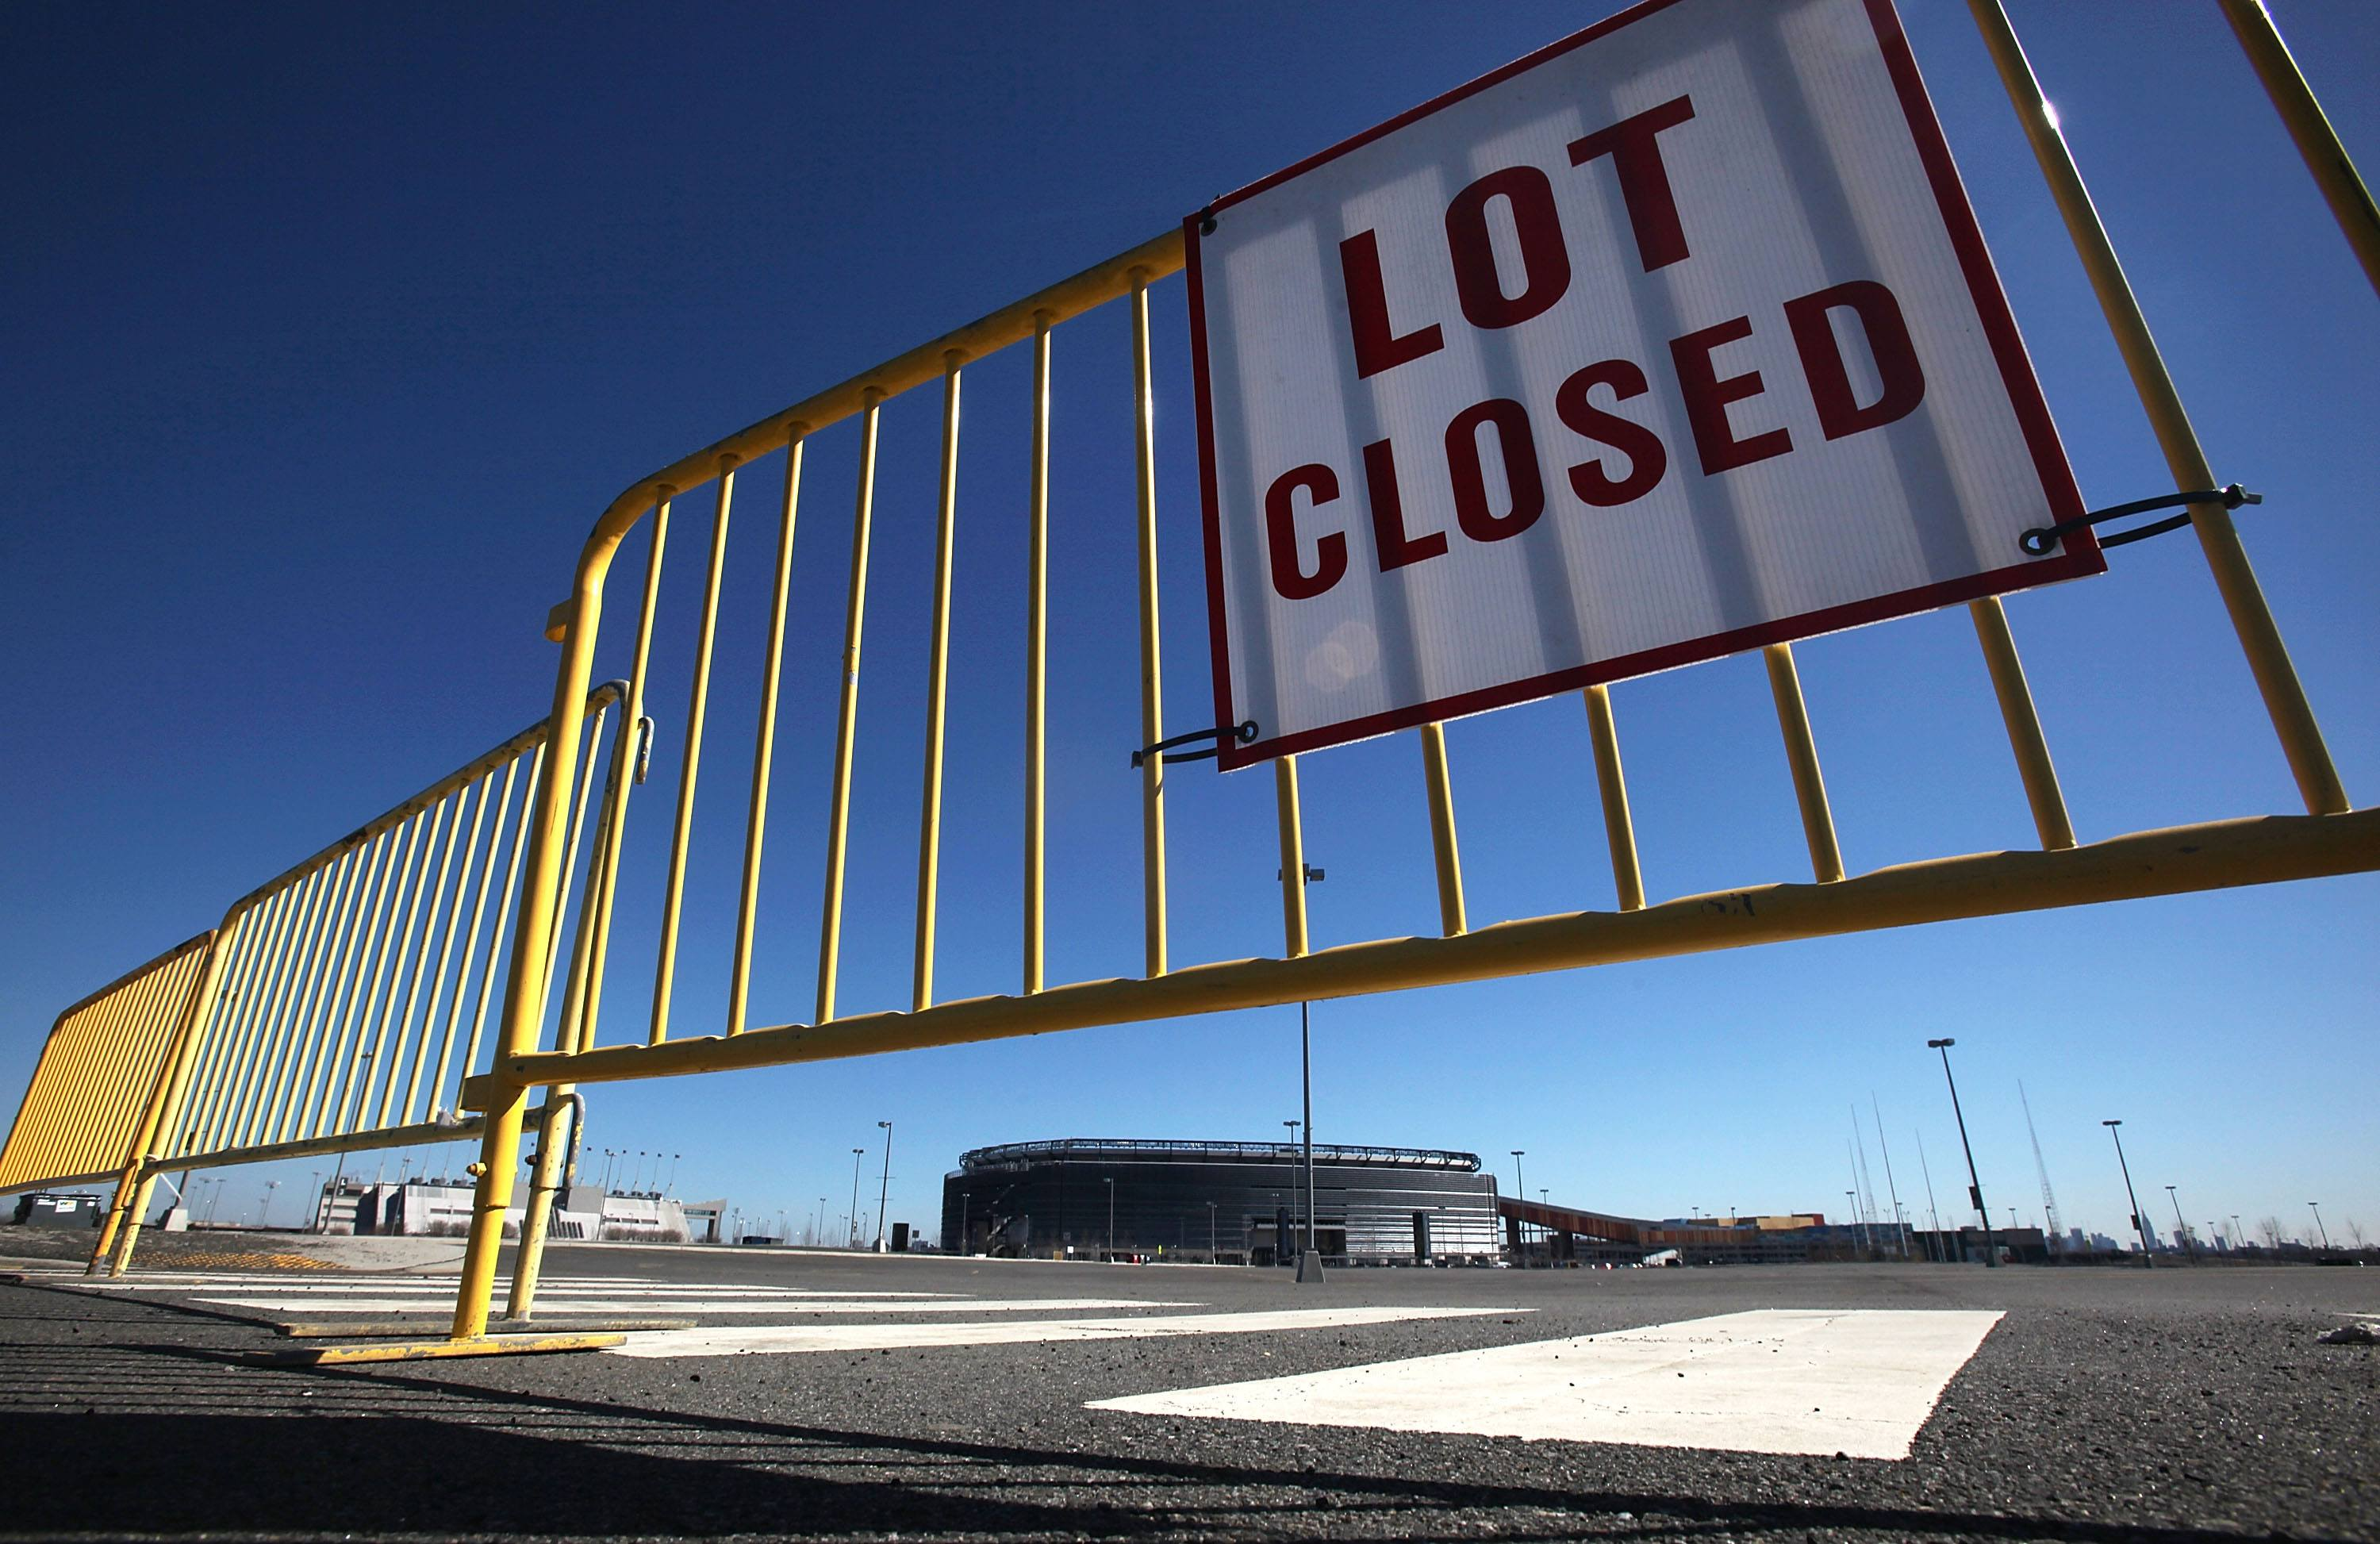 NFL Parking Lot_Mario Tama_Getty Images